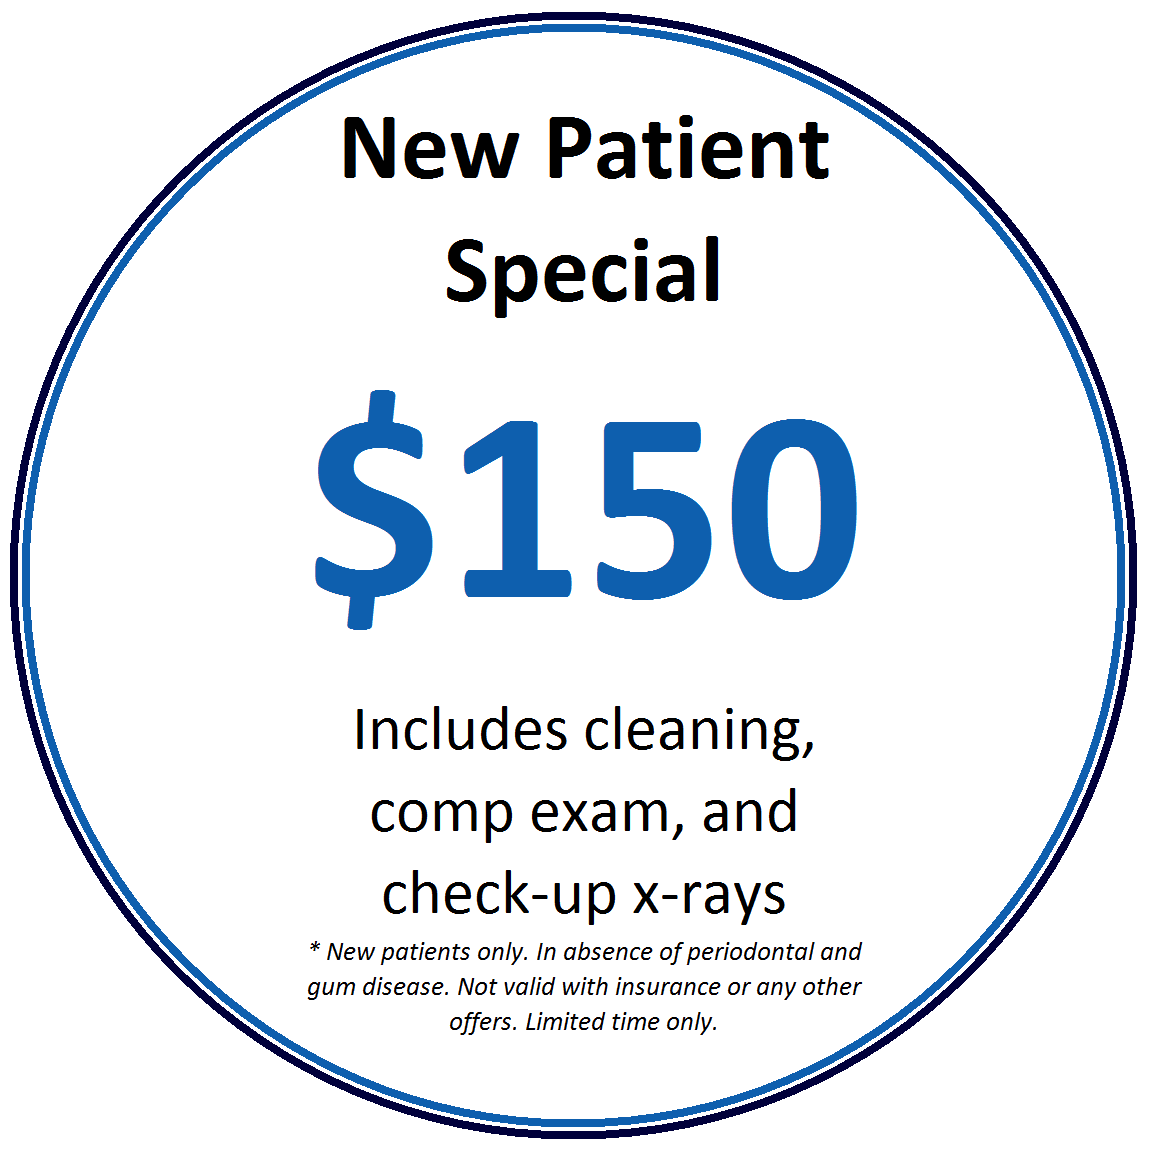 New Patient Special 2018.png